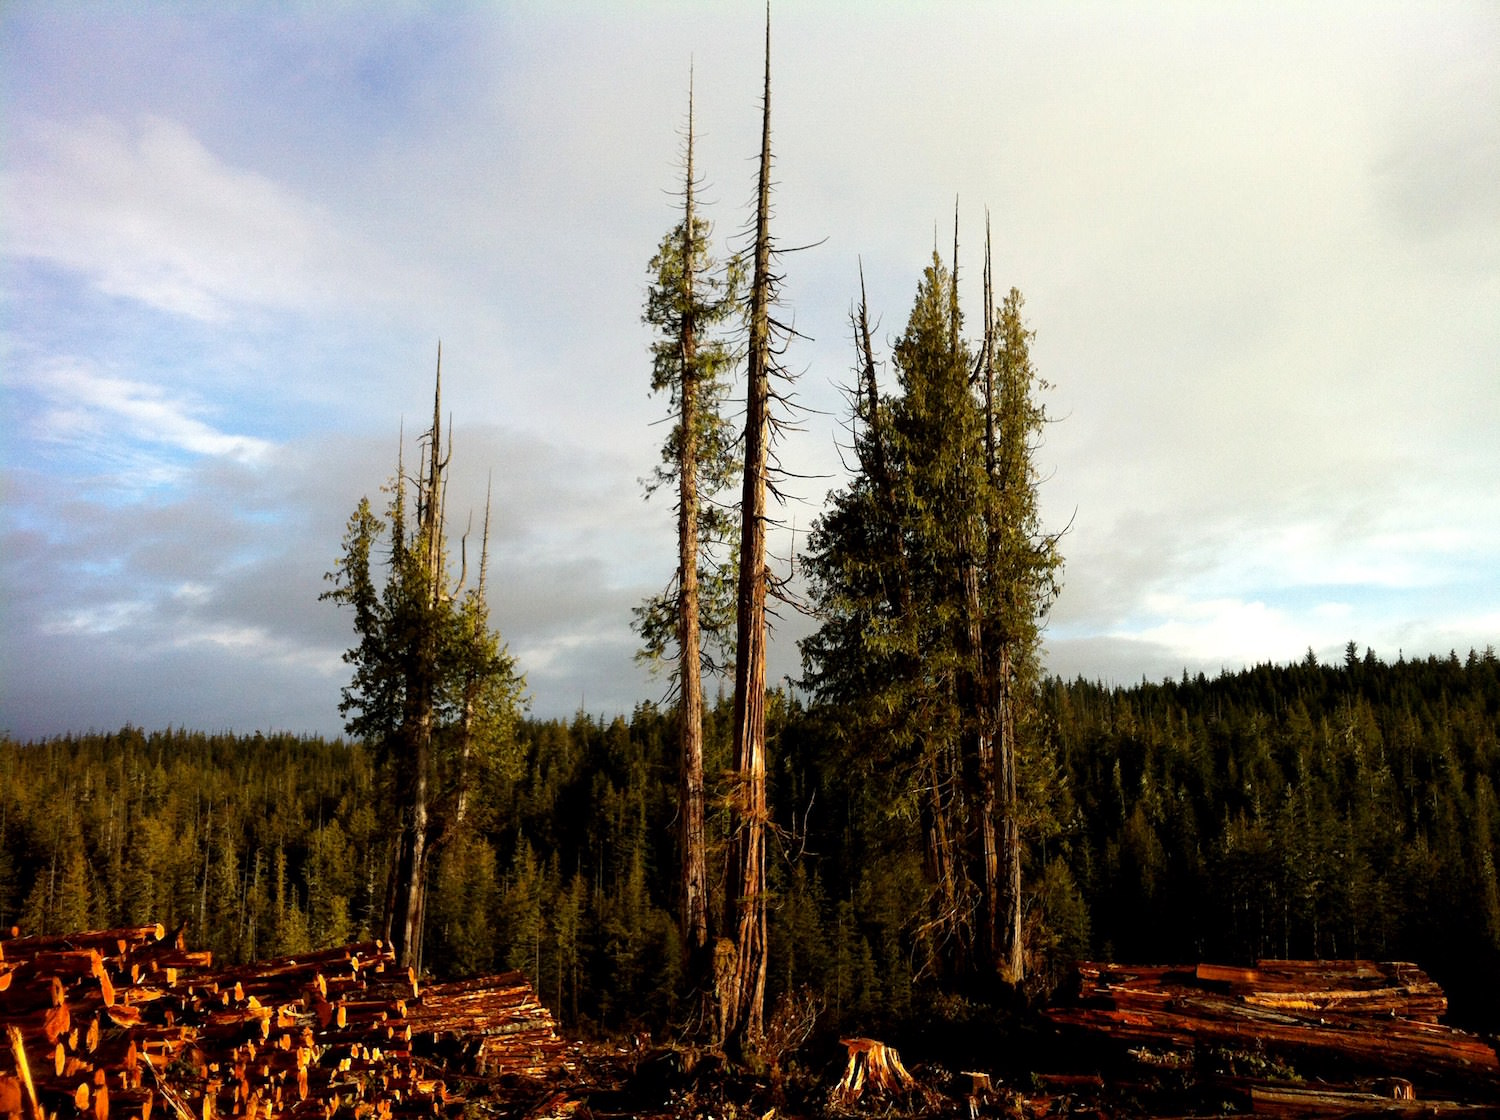 Timberlands / Between Port Hardy and Fort Rupert, British Columbia